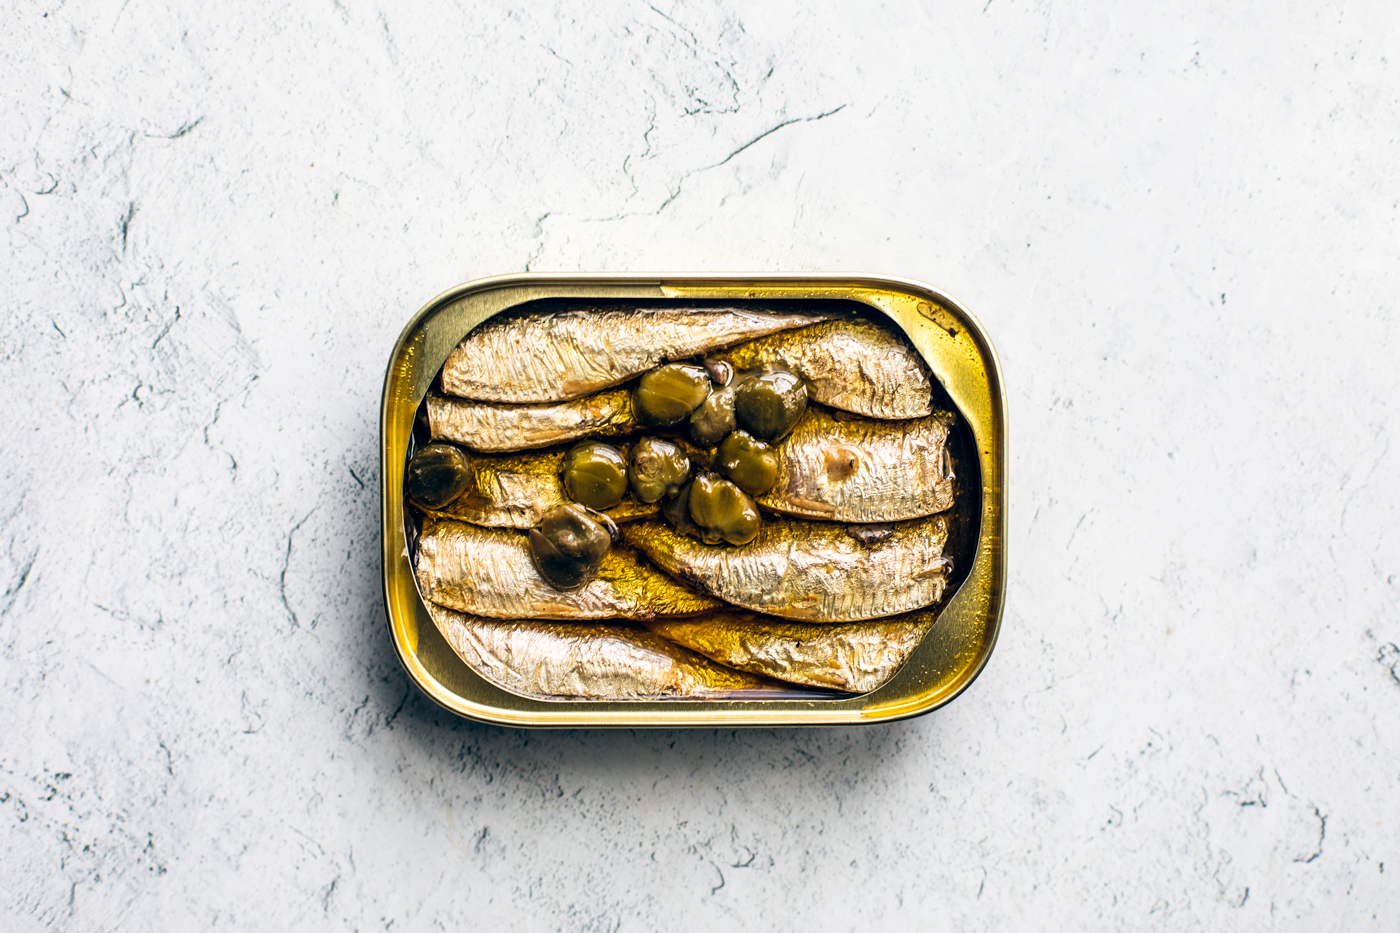 Opened can of sardines with capers on top.